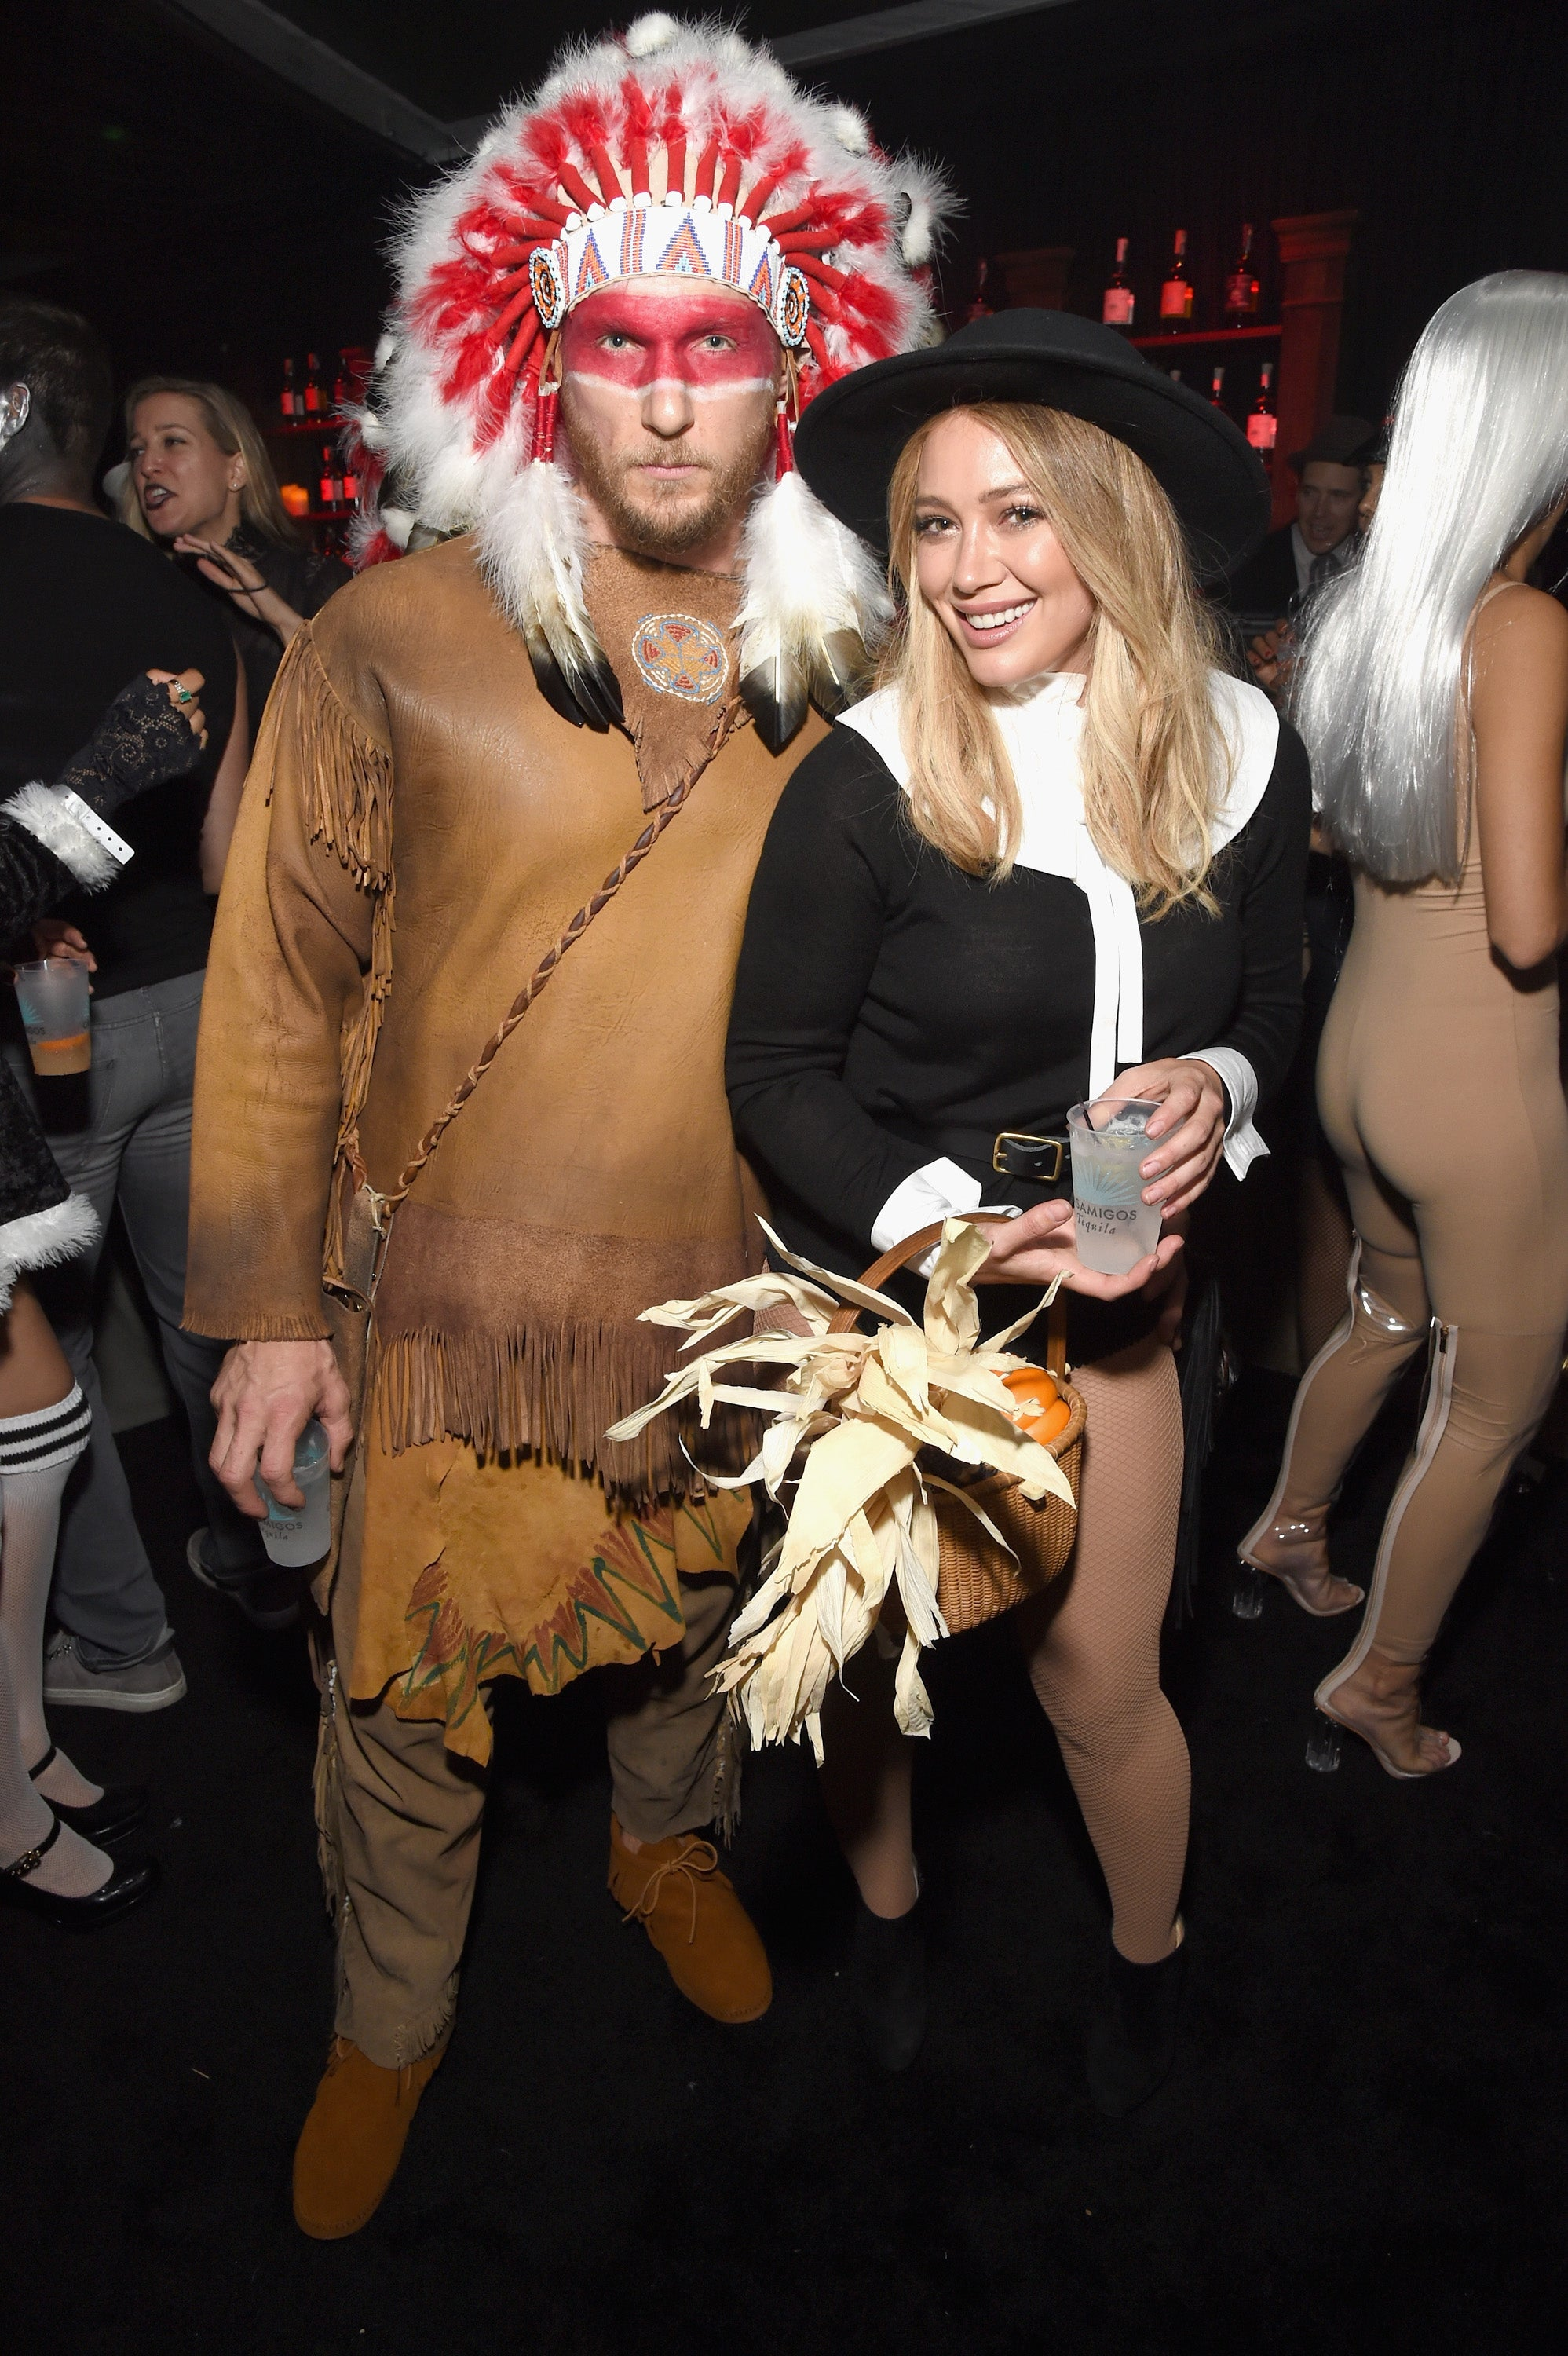 Hilary Duff Apologizes for Controversial Halloween Costume: 'It ...